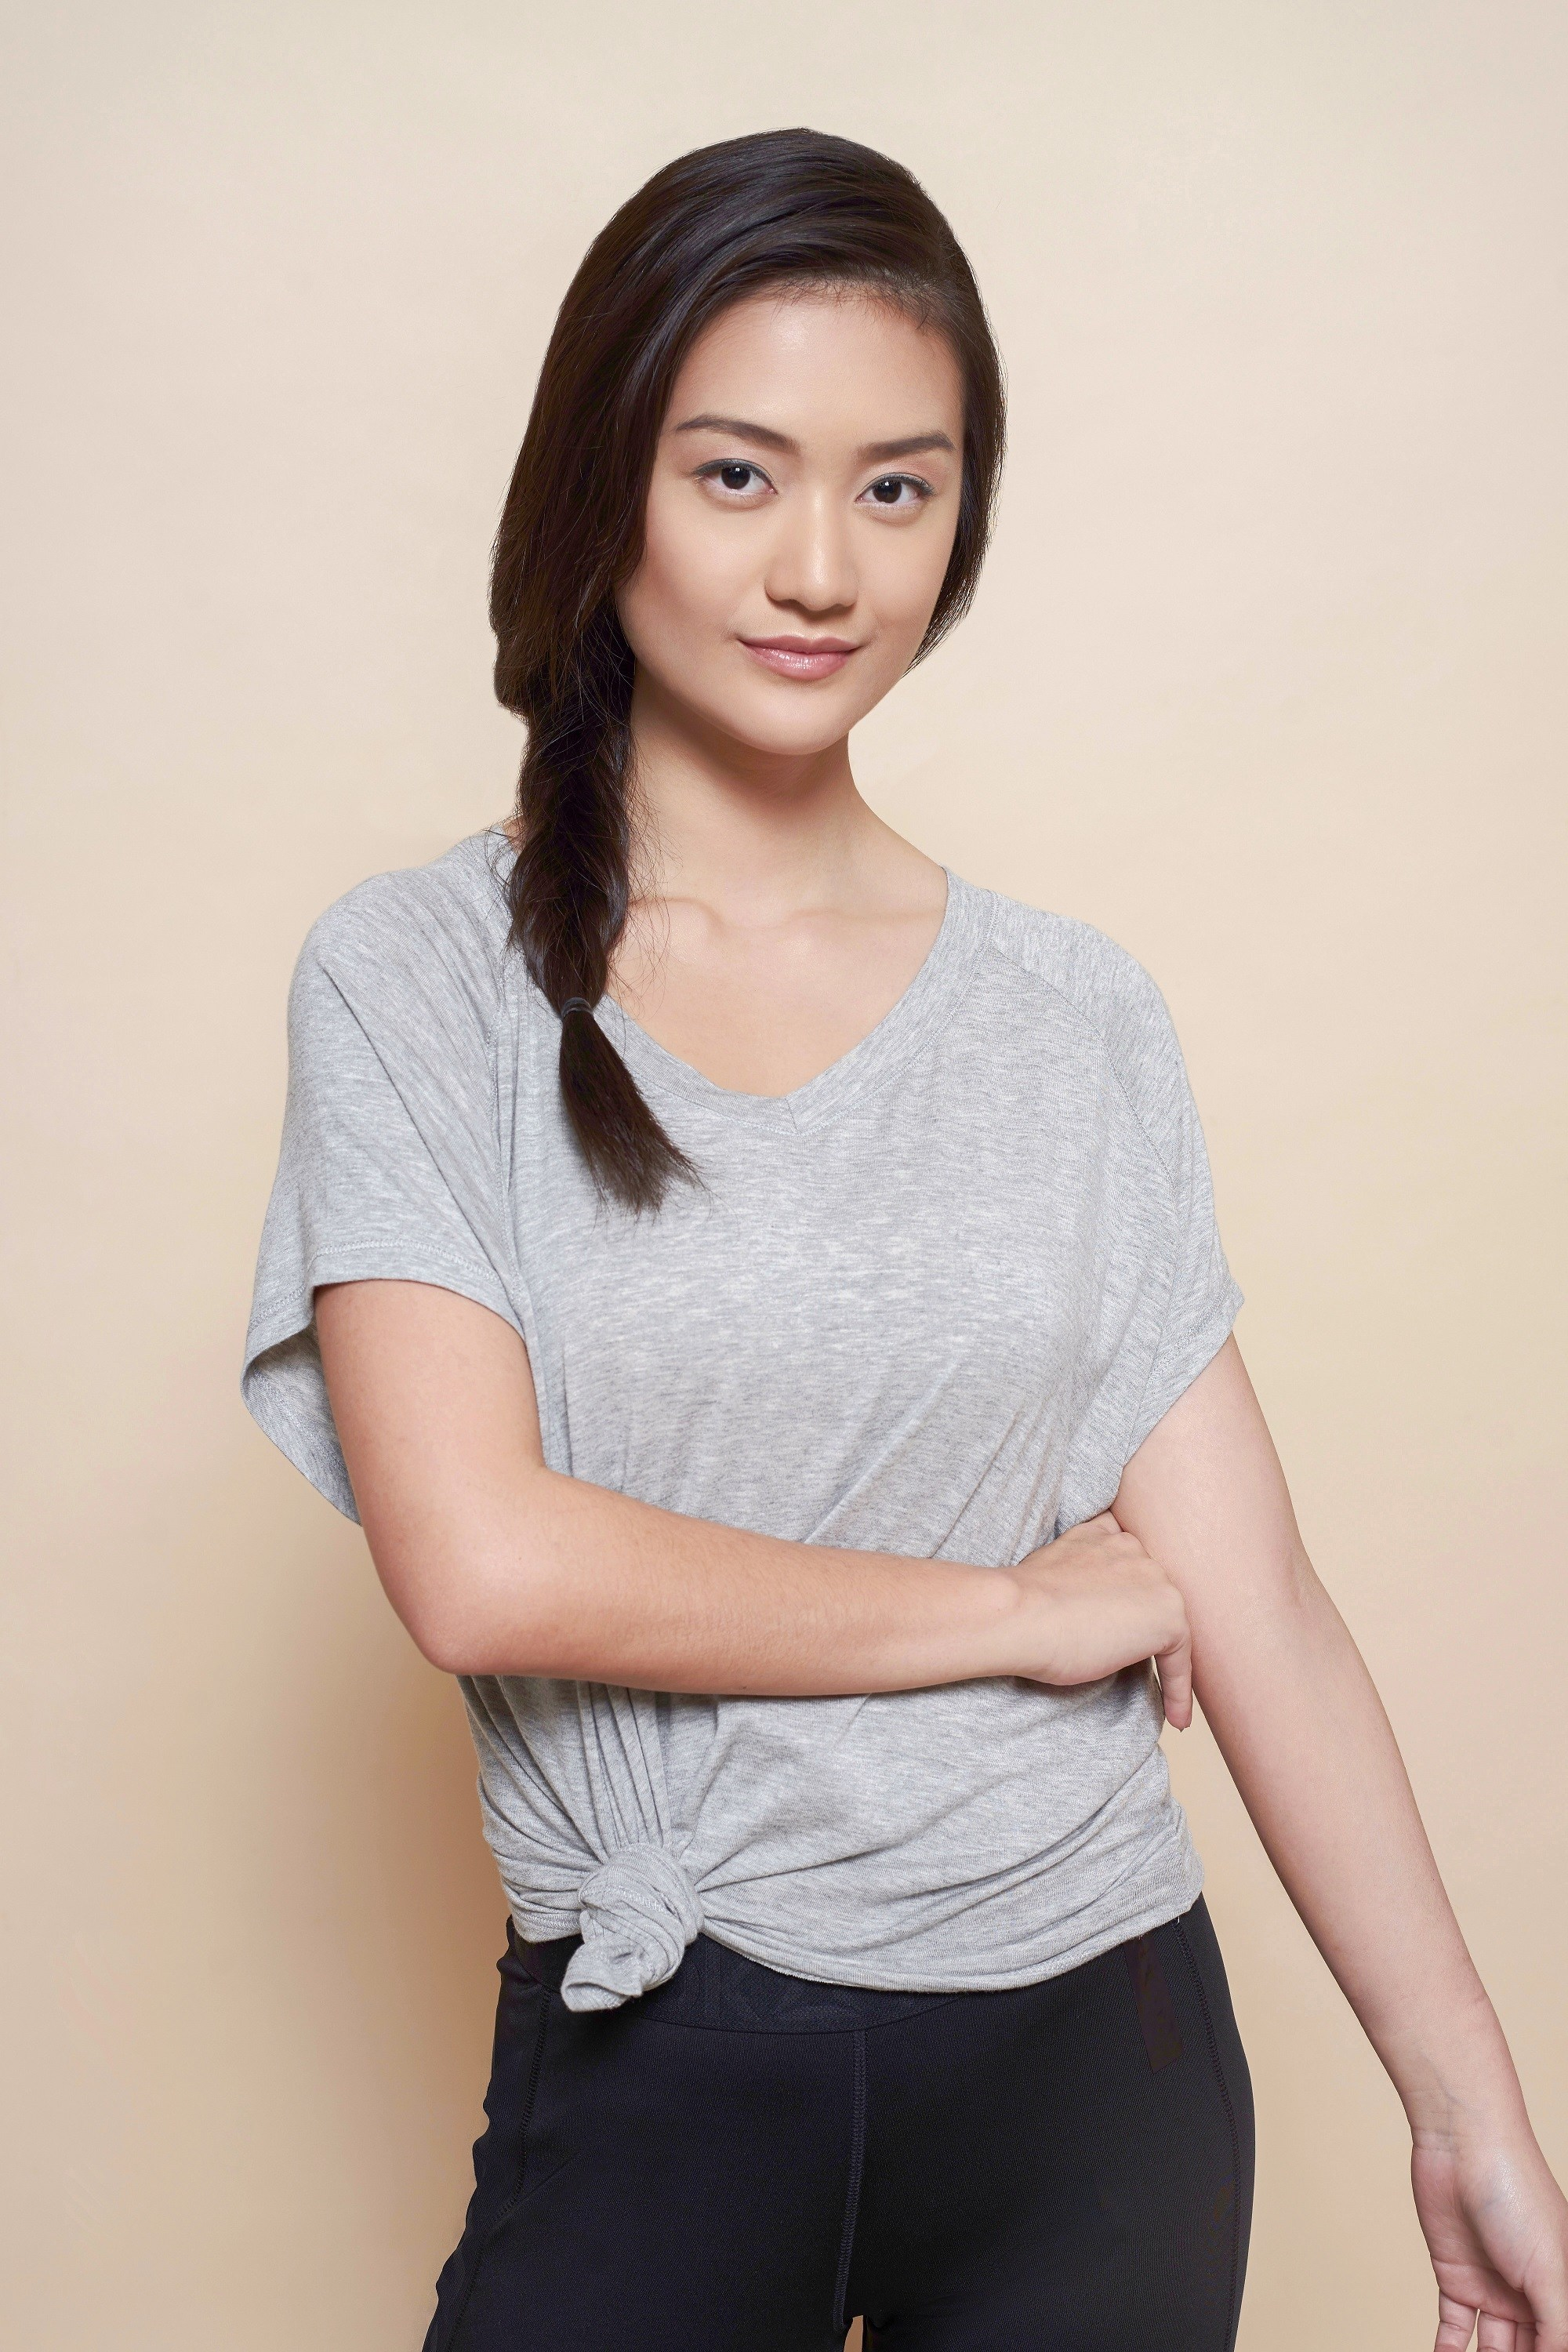 Side hairstyles: Asian woman with side fishtail braid